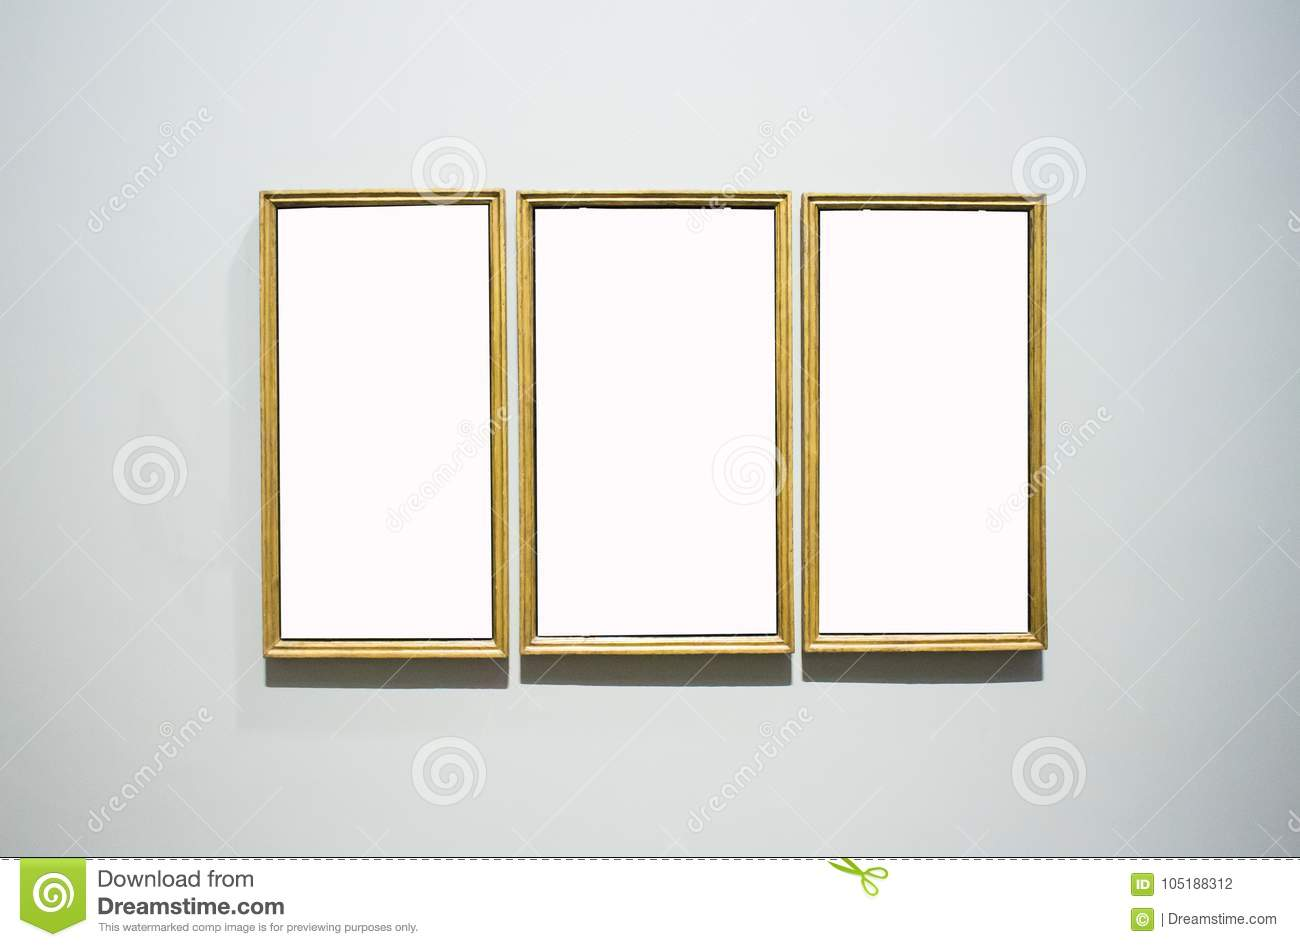 Three Ornate Picture Frames Art Gallery Museum Exhibit Blank Whi ...